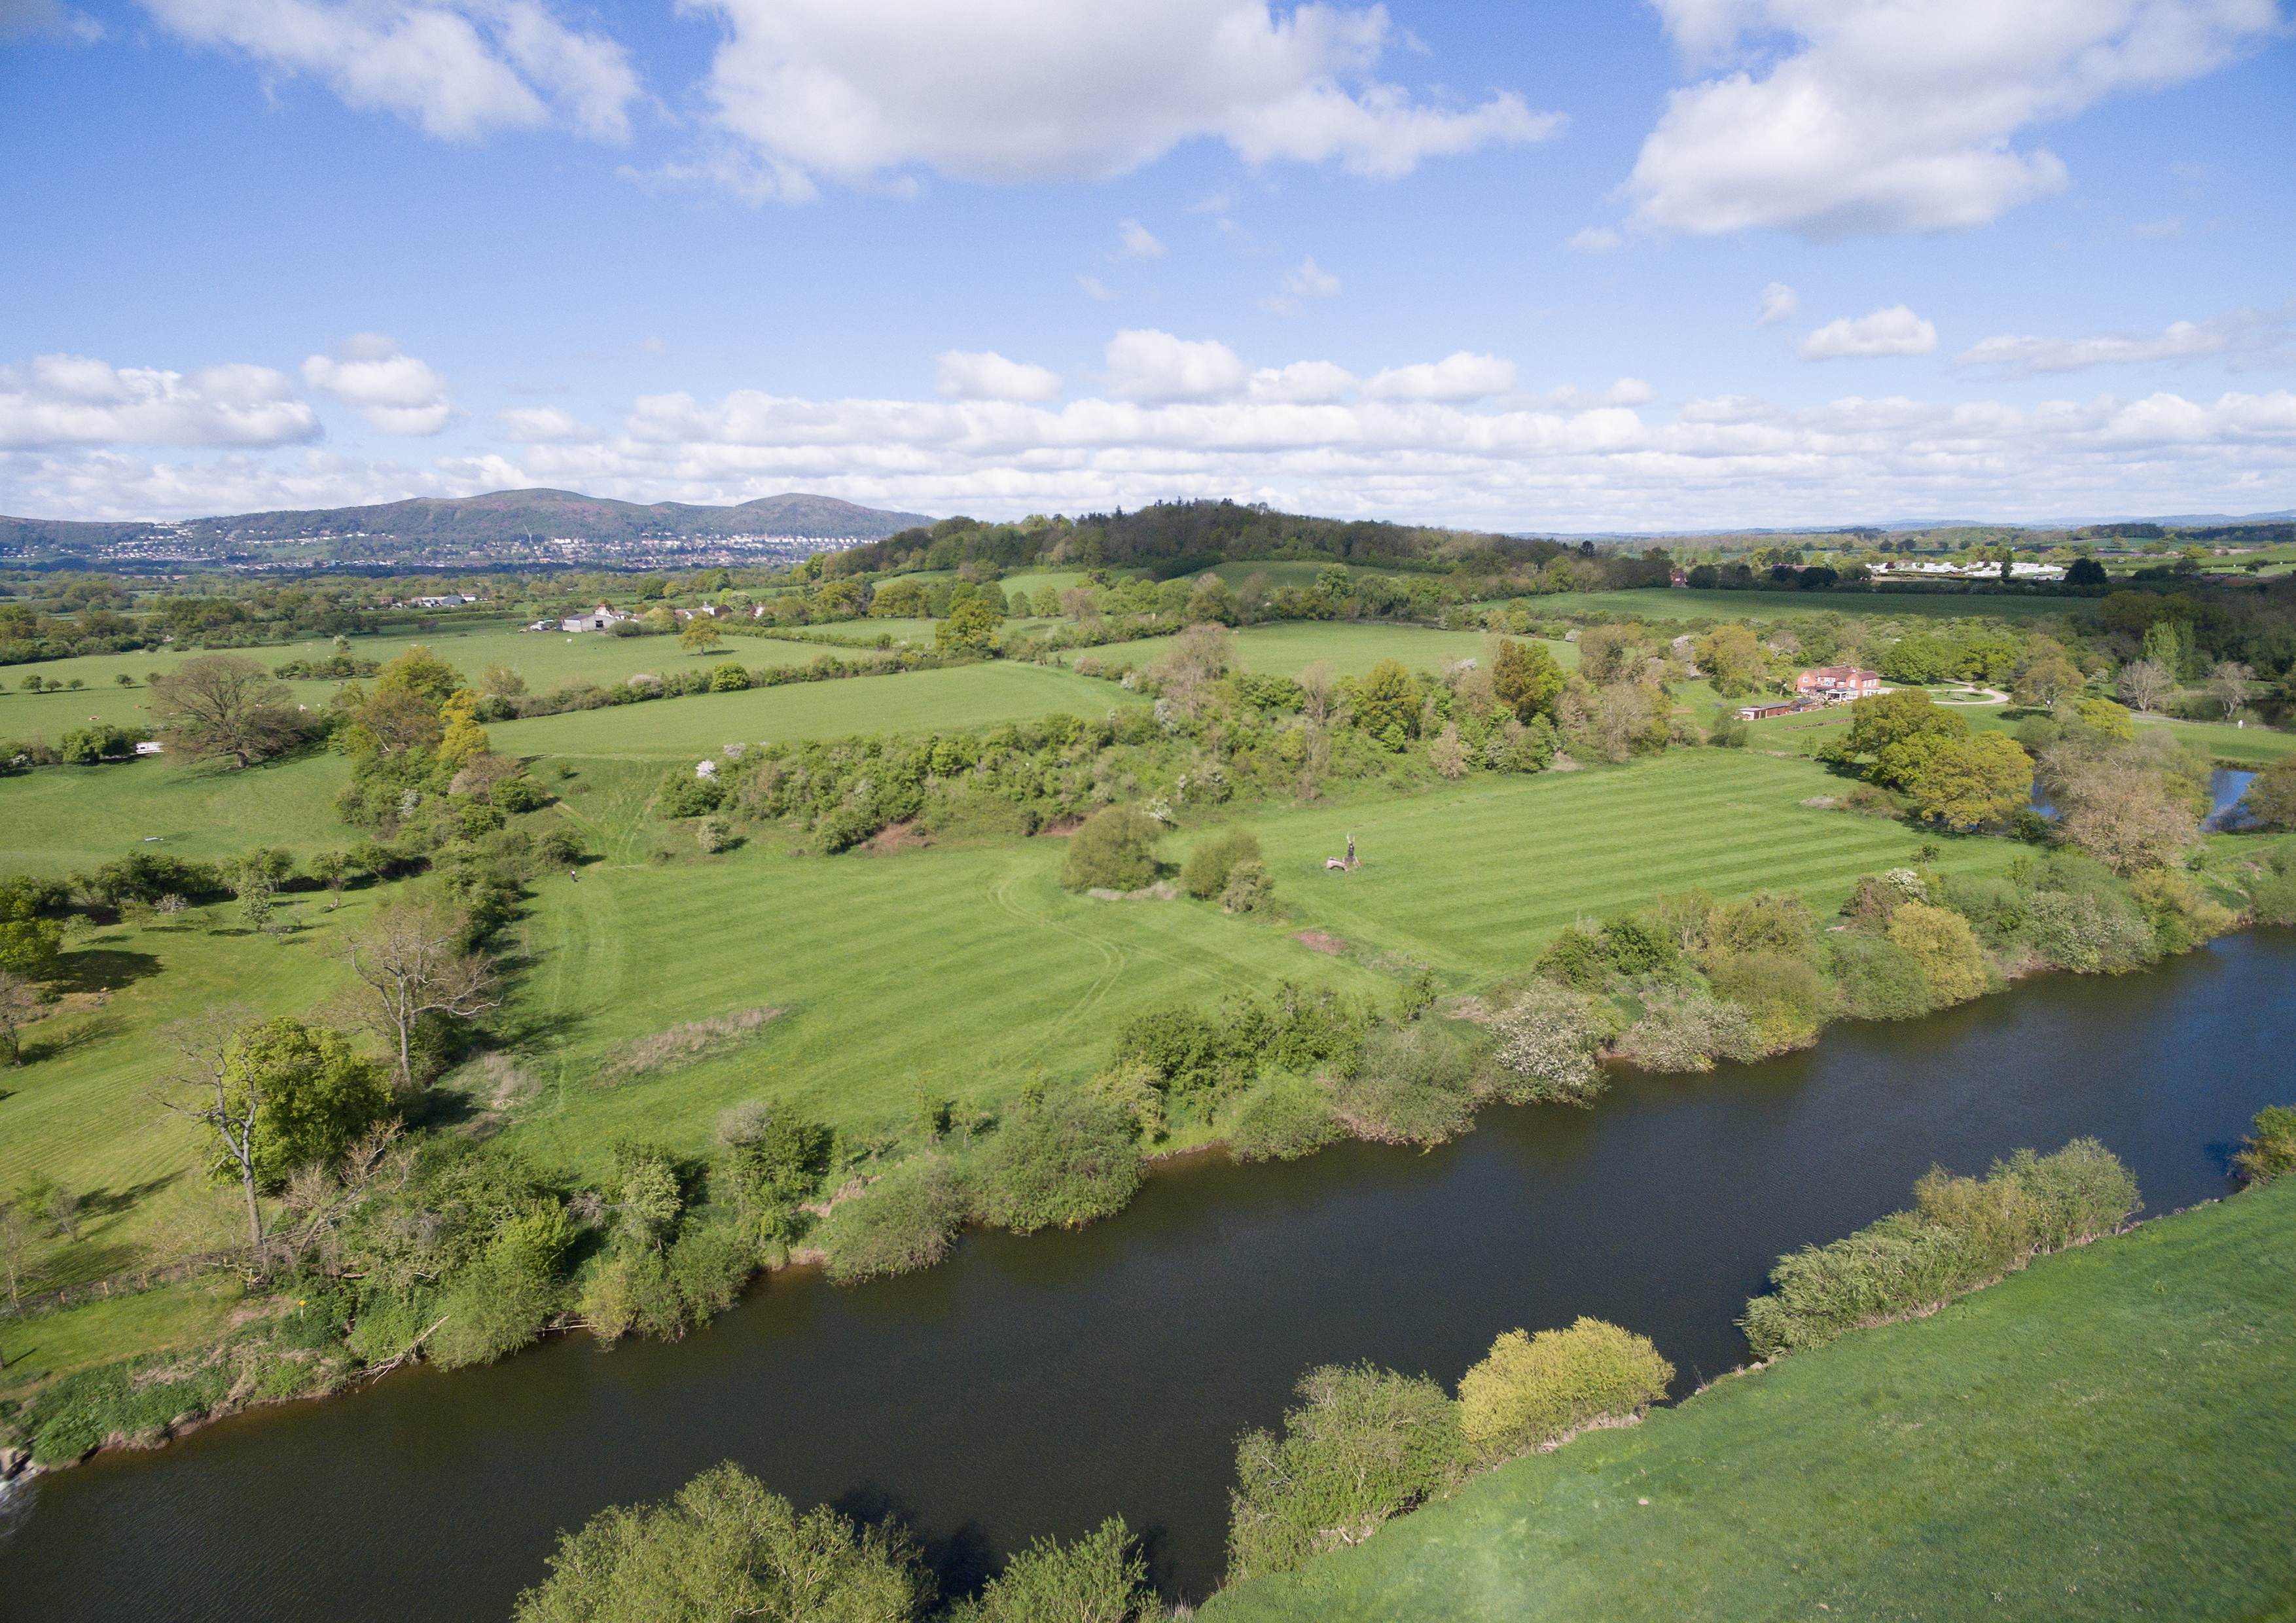 Land at The Rhydd, Worcestershire: SOLD